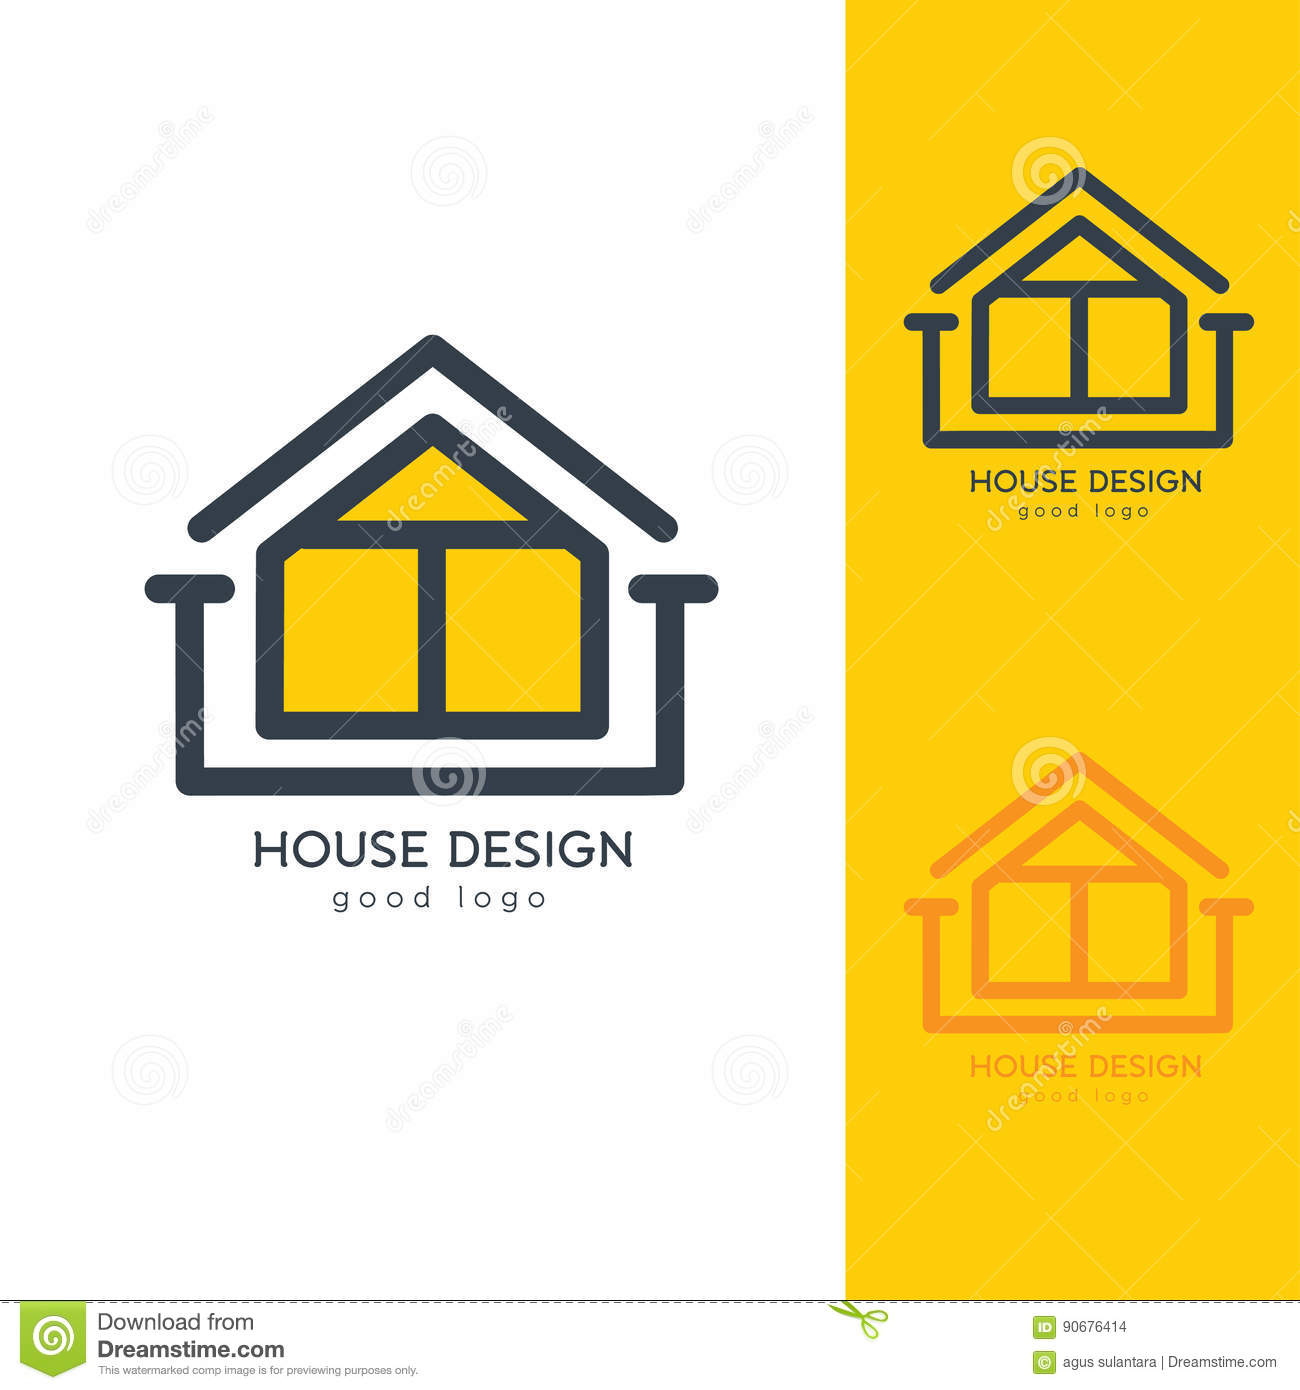 download modern house logo design template flat simple stock vector illustration of colorful modern